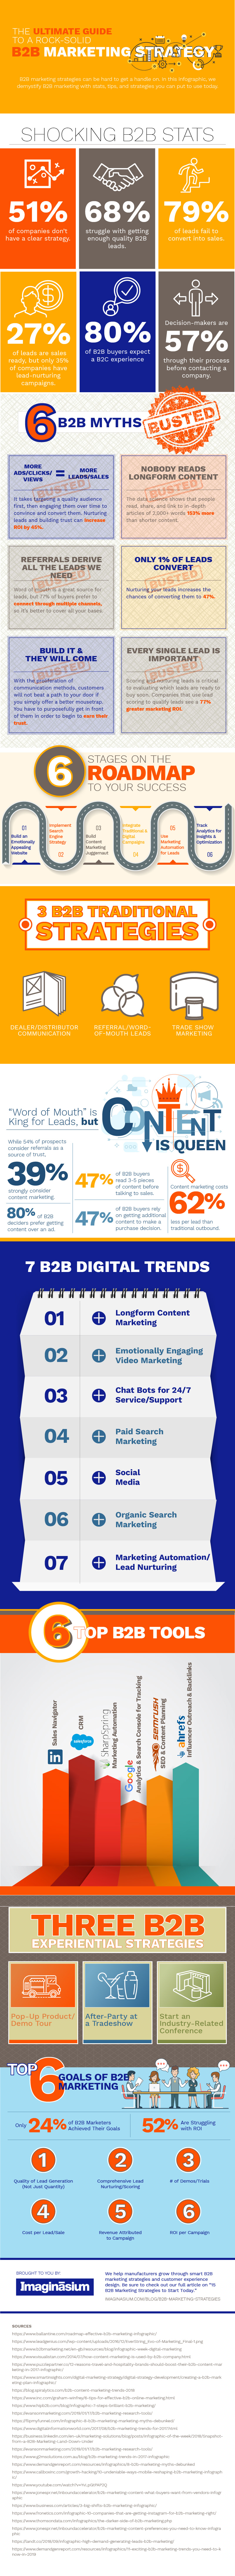 Infographic looks at B2B strategy tips and insights